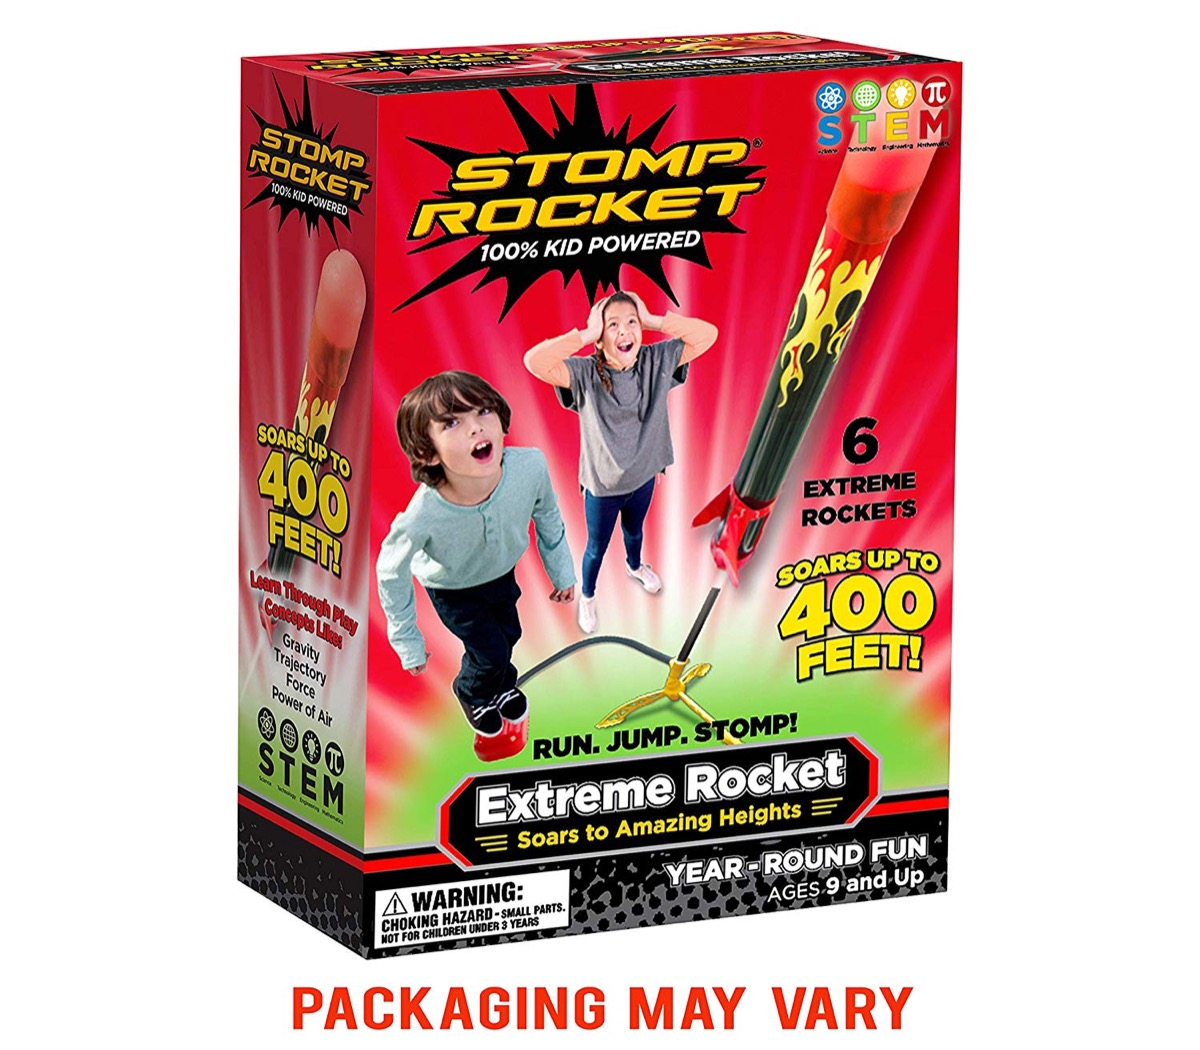 box with toy rocket in it